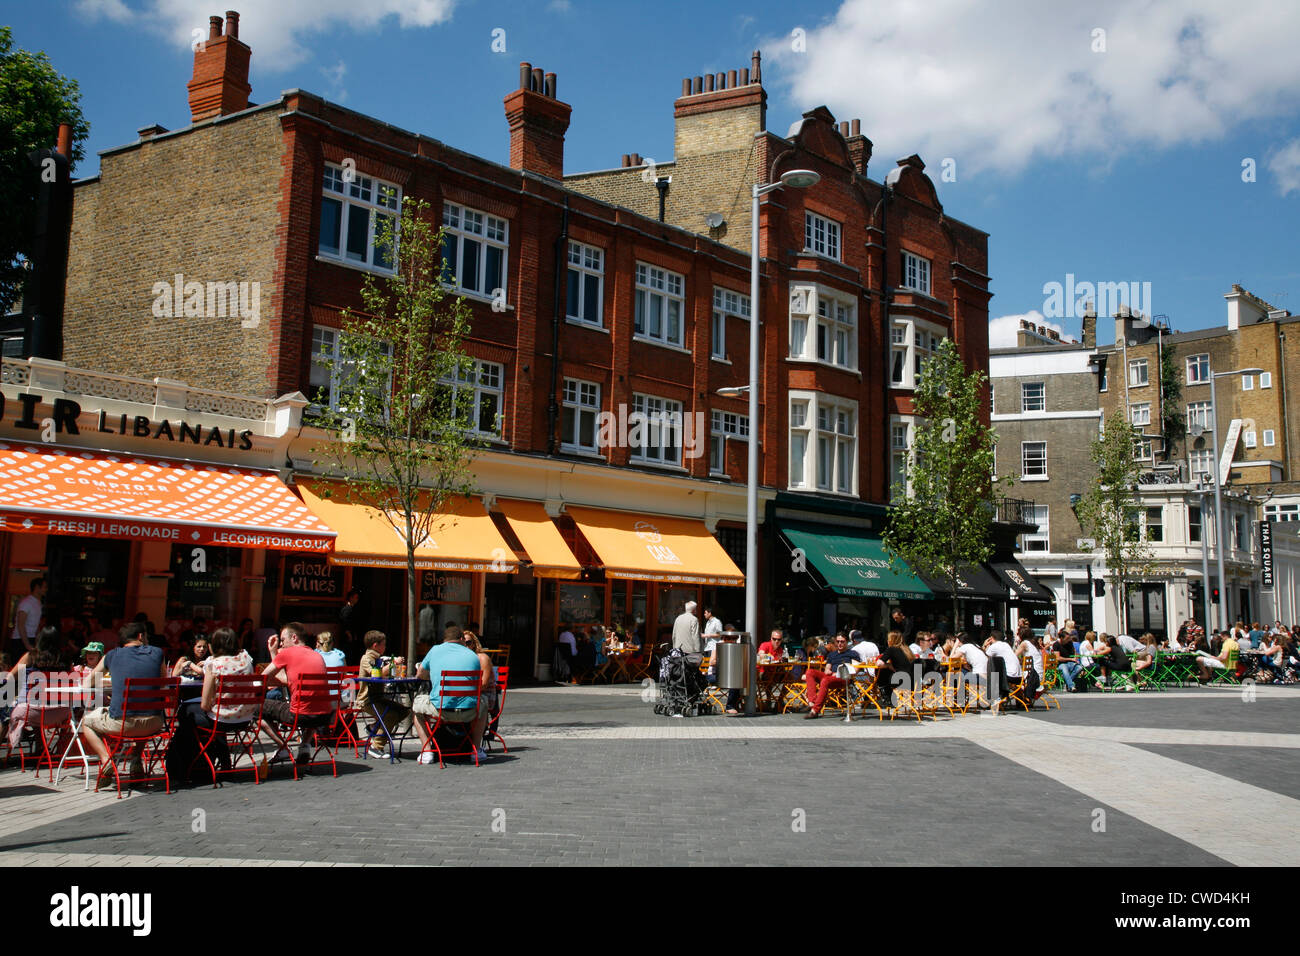 Comptoir libanais and casa brindisa restaurants and greenfields cafe on exhibition road south kensington london uk